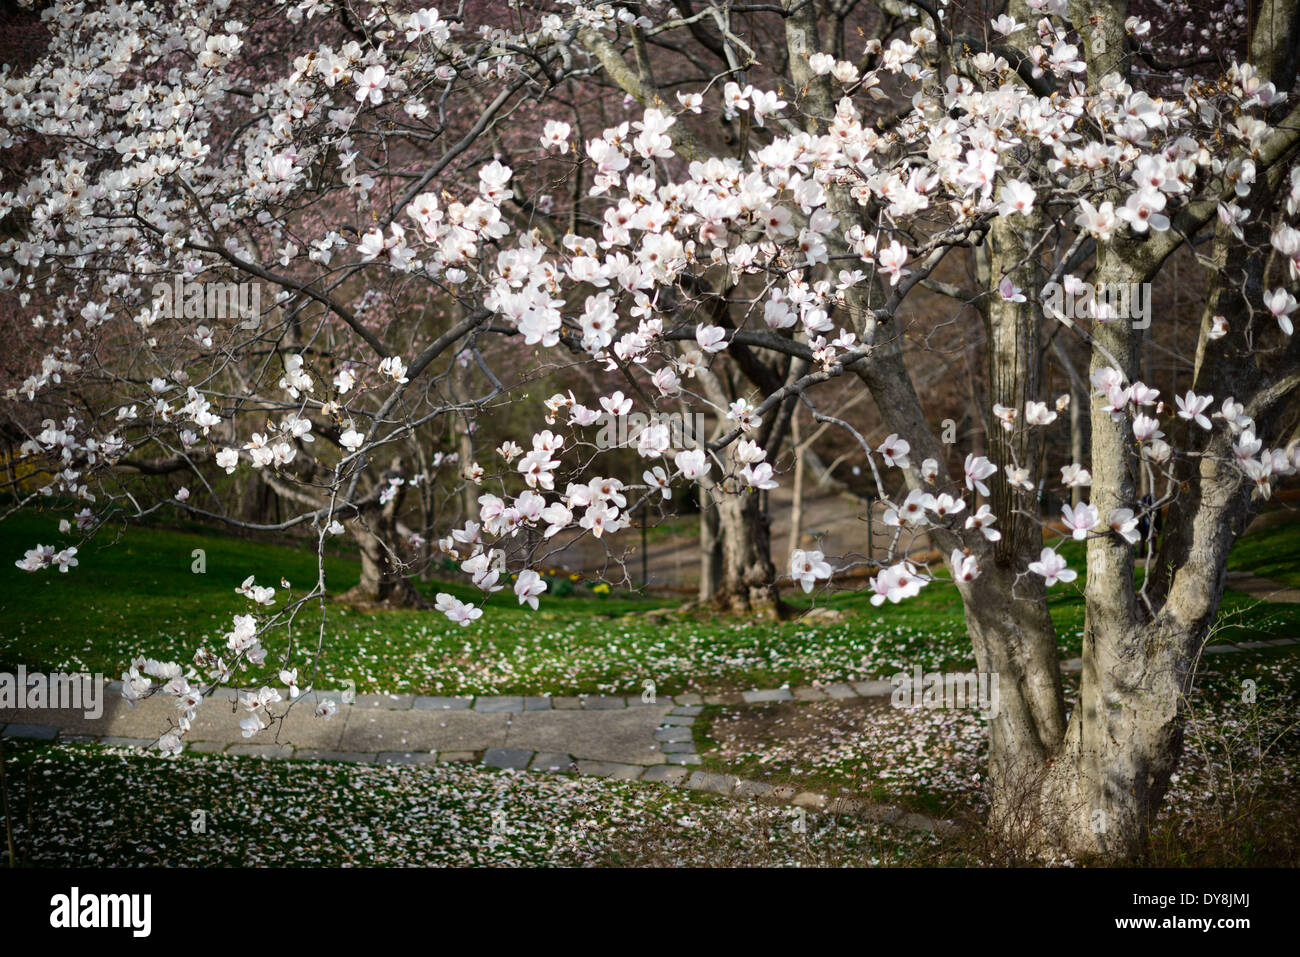 WASHINGTON DC, USA - The gardens at Dumbarton Oaks, an historic estate in the heart of Washington DC's Georgetown neighborhood. It was the residence and gardens of Robert Woods Bliss (1875–1962) and his wife Mildred Barnes Bliss (1879–1969). - Stock Image